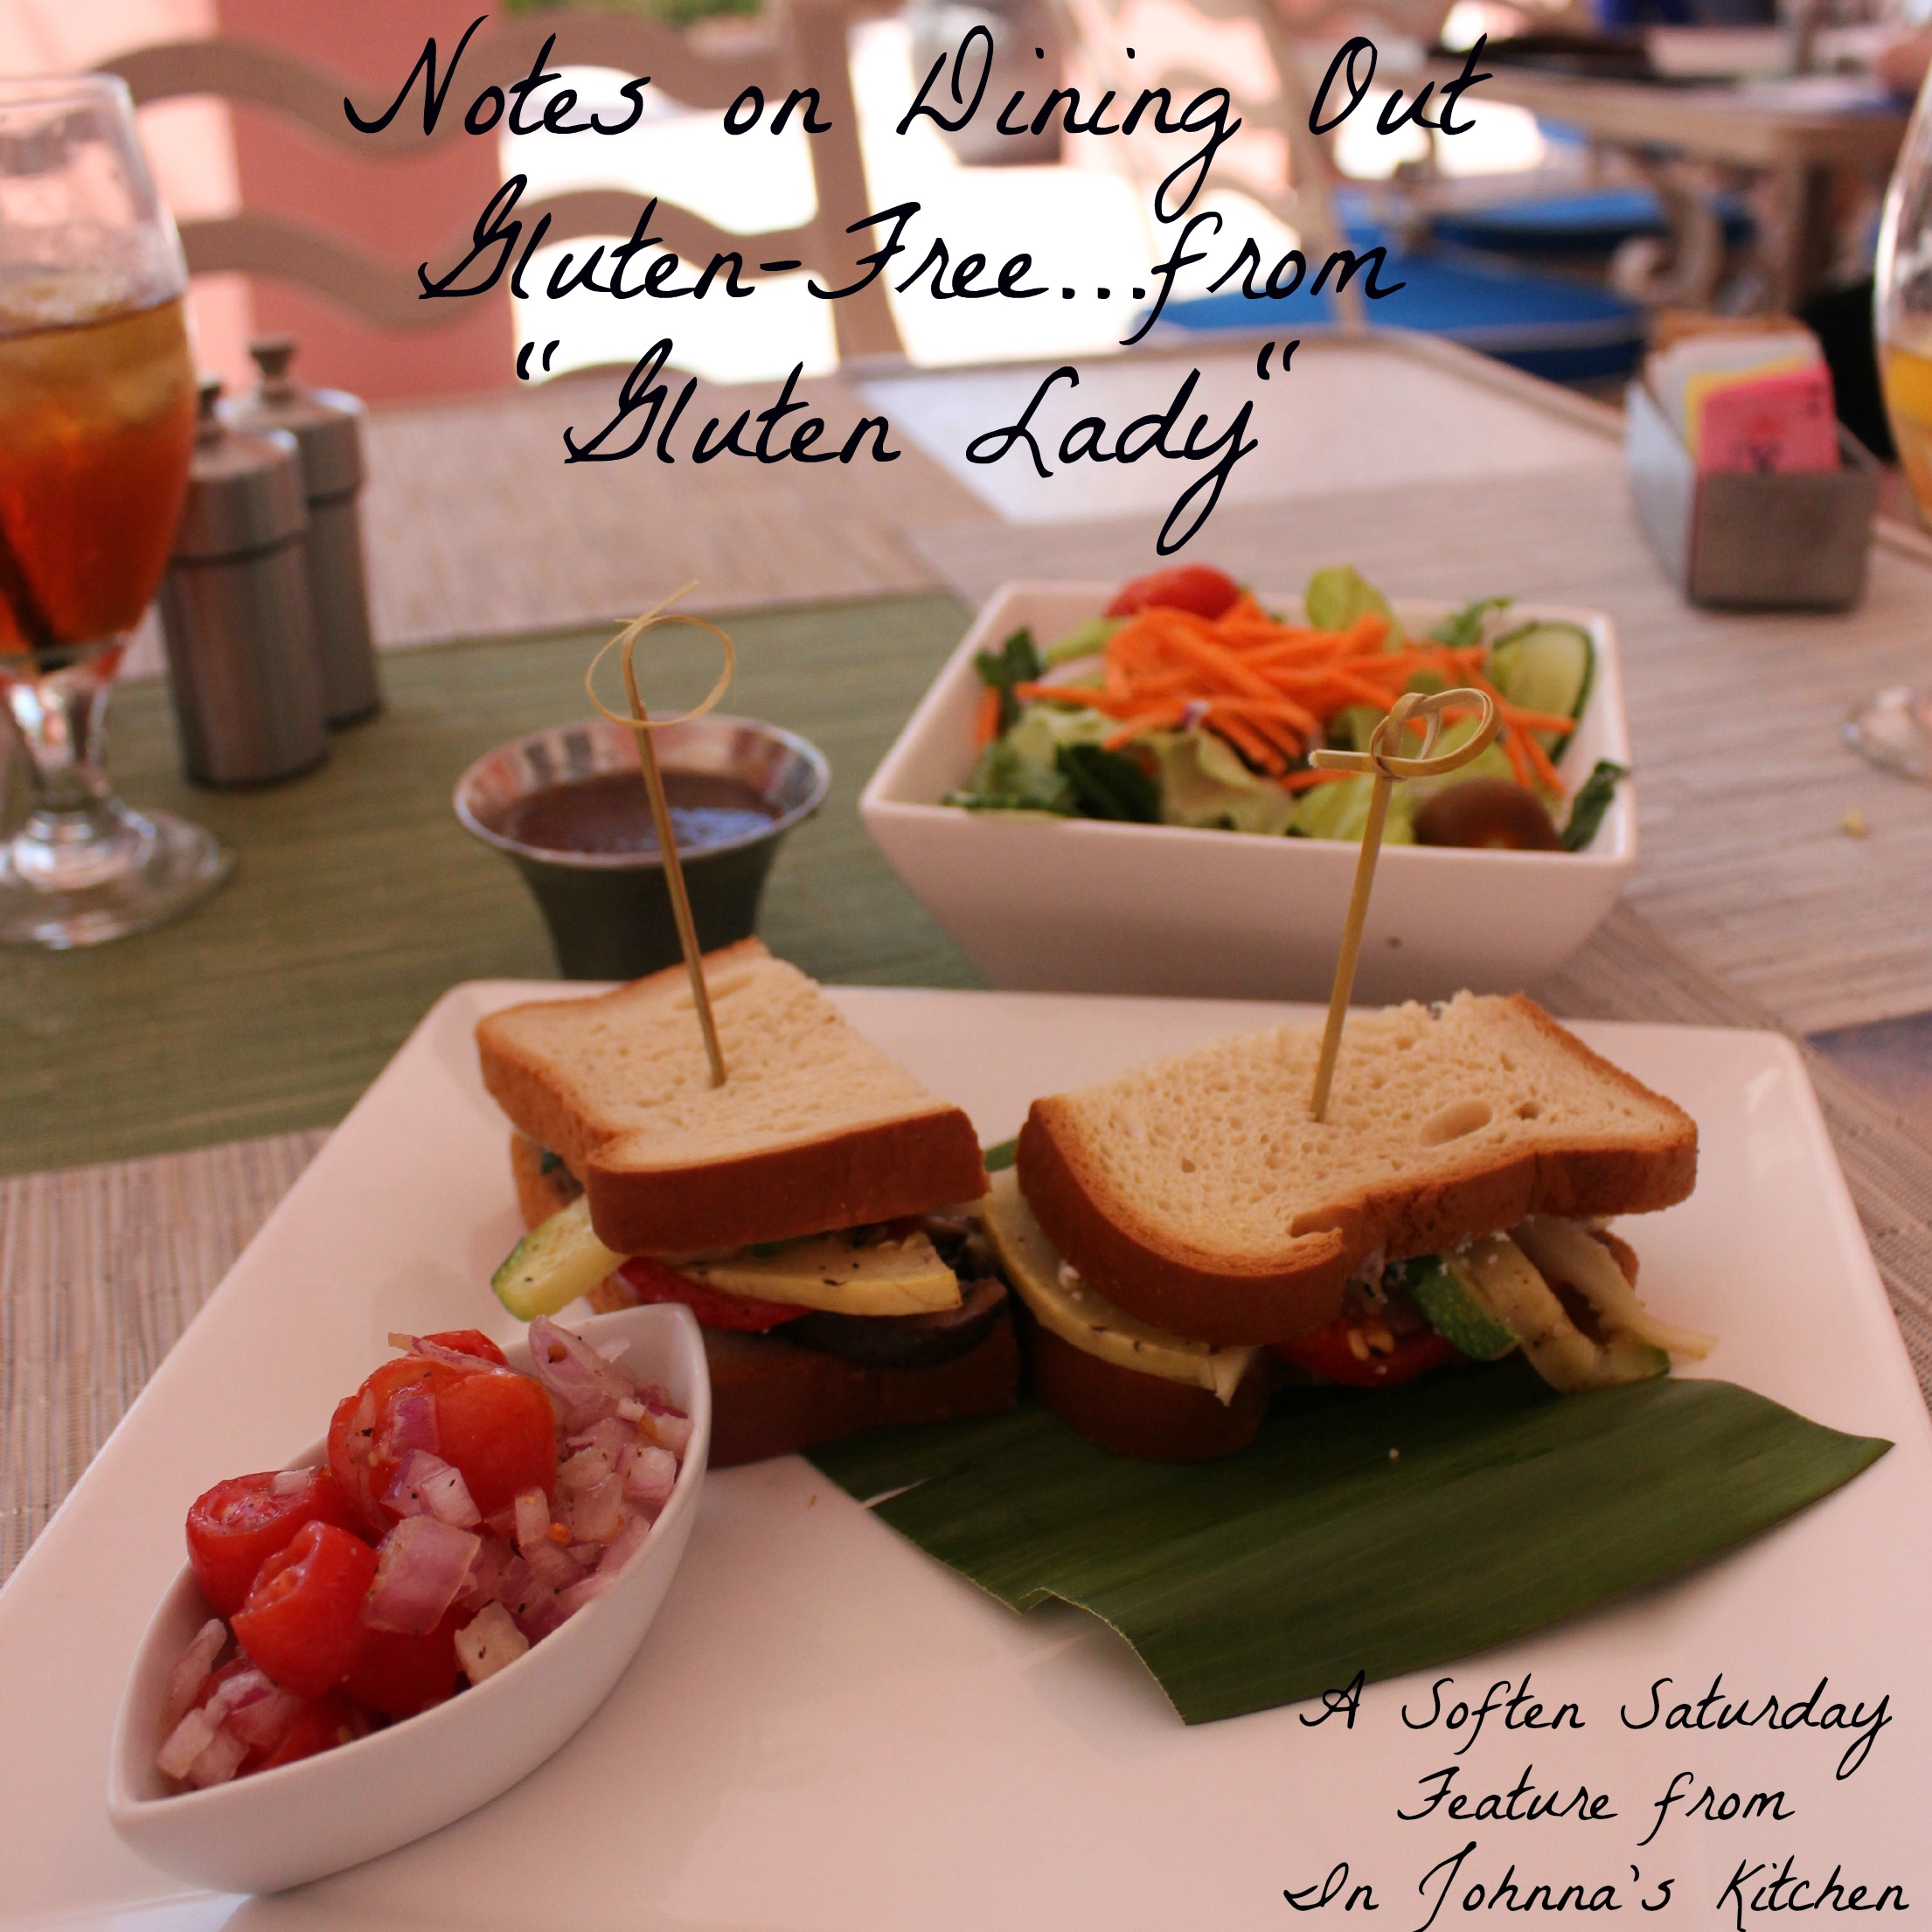 Notes on Dining Out Gluten-Free